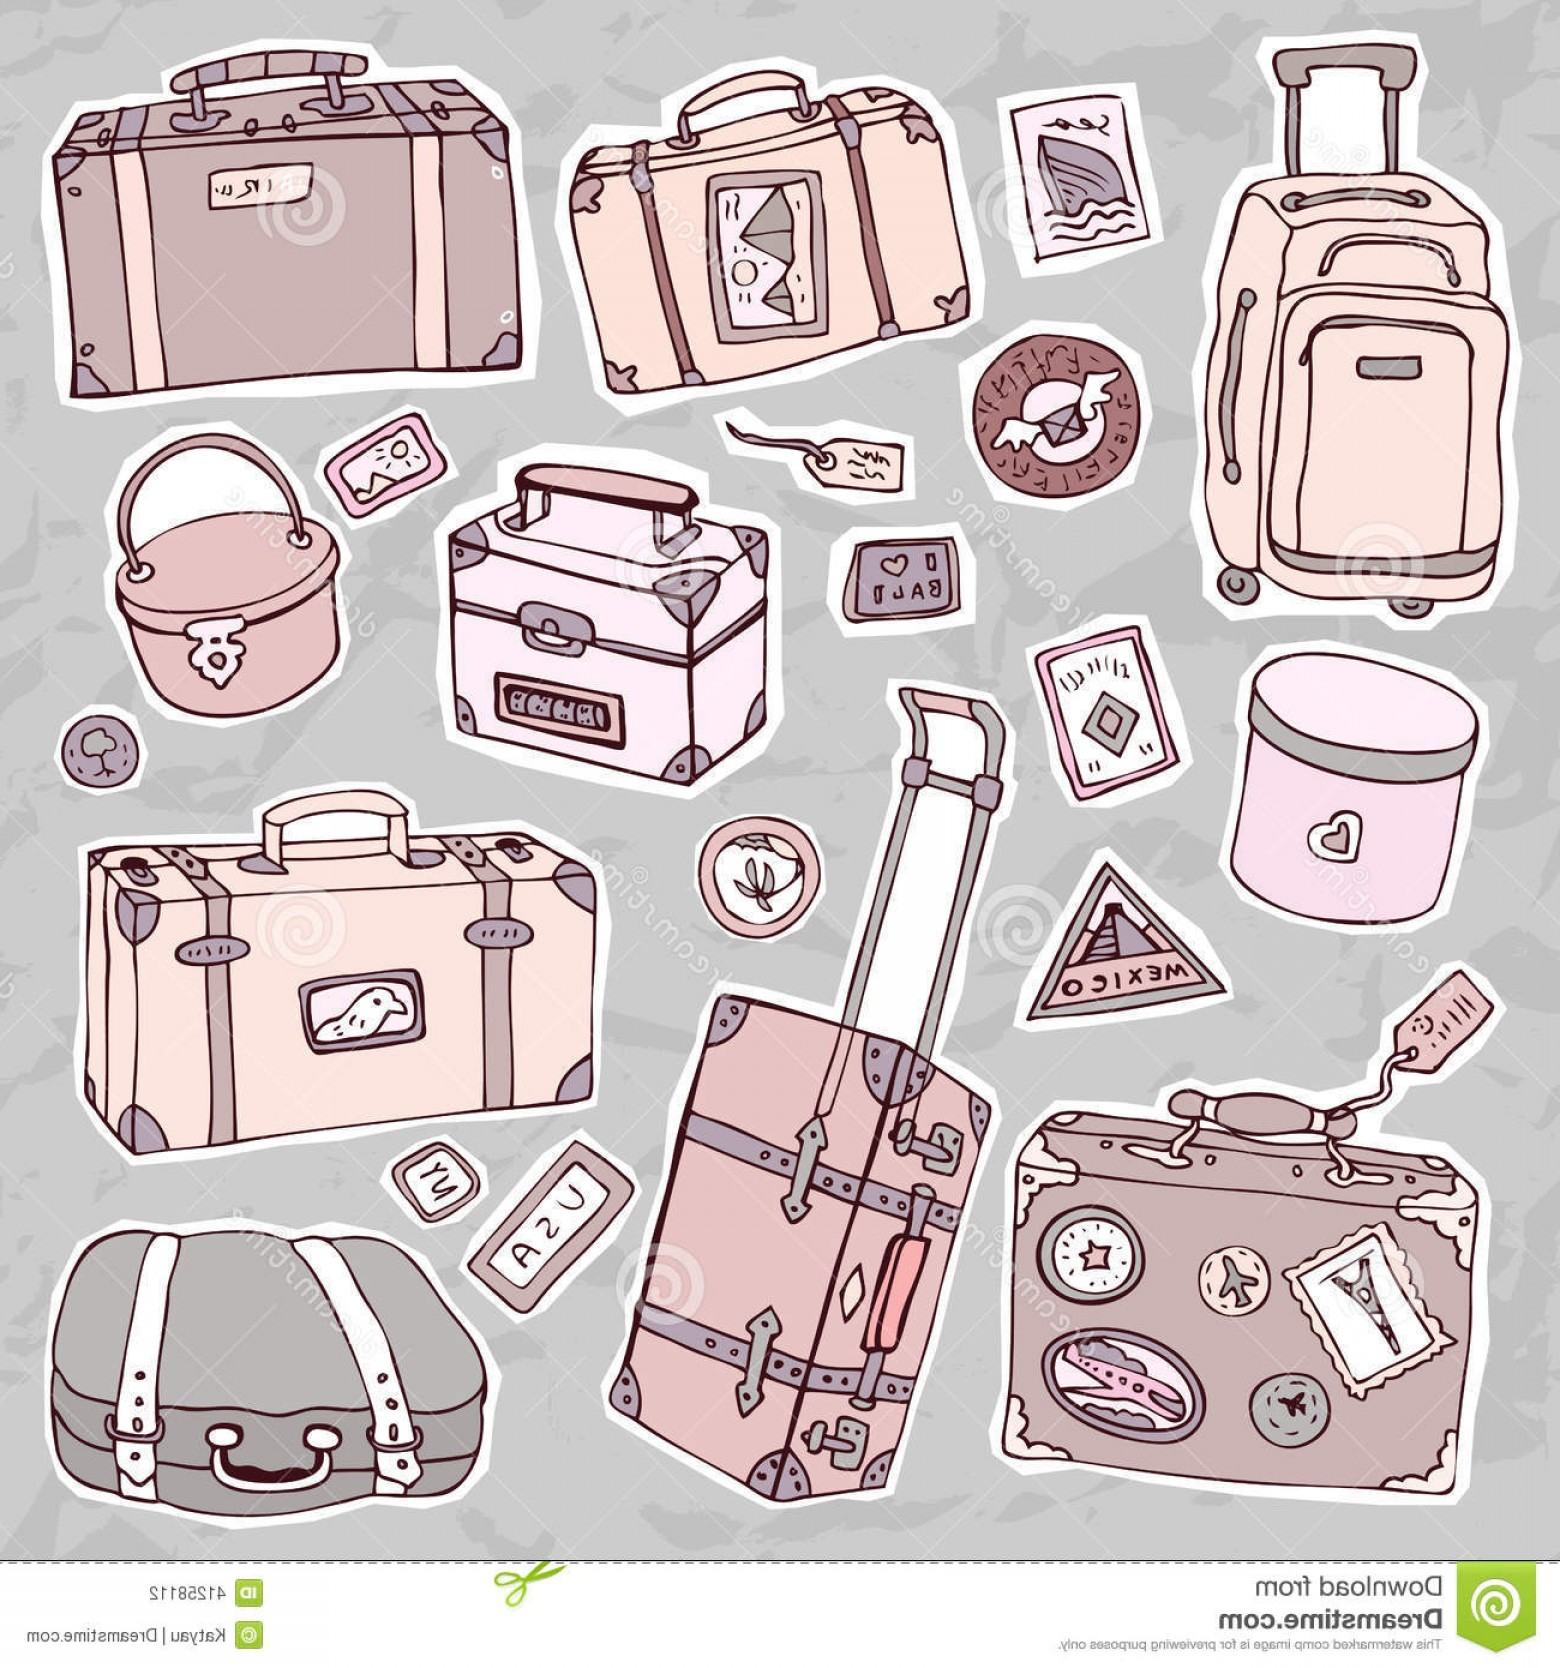 Vintage Luggage Vector: Stock Illustration Vintage Suitcases Set Travel Vector Illustration Collection Isolated Image